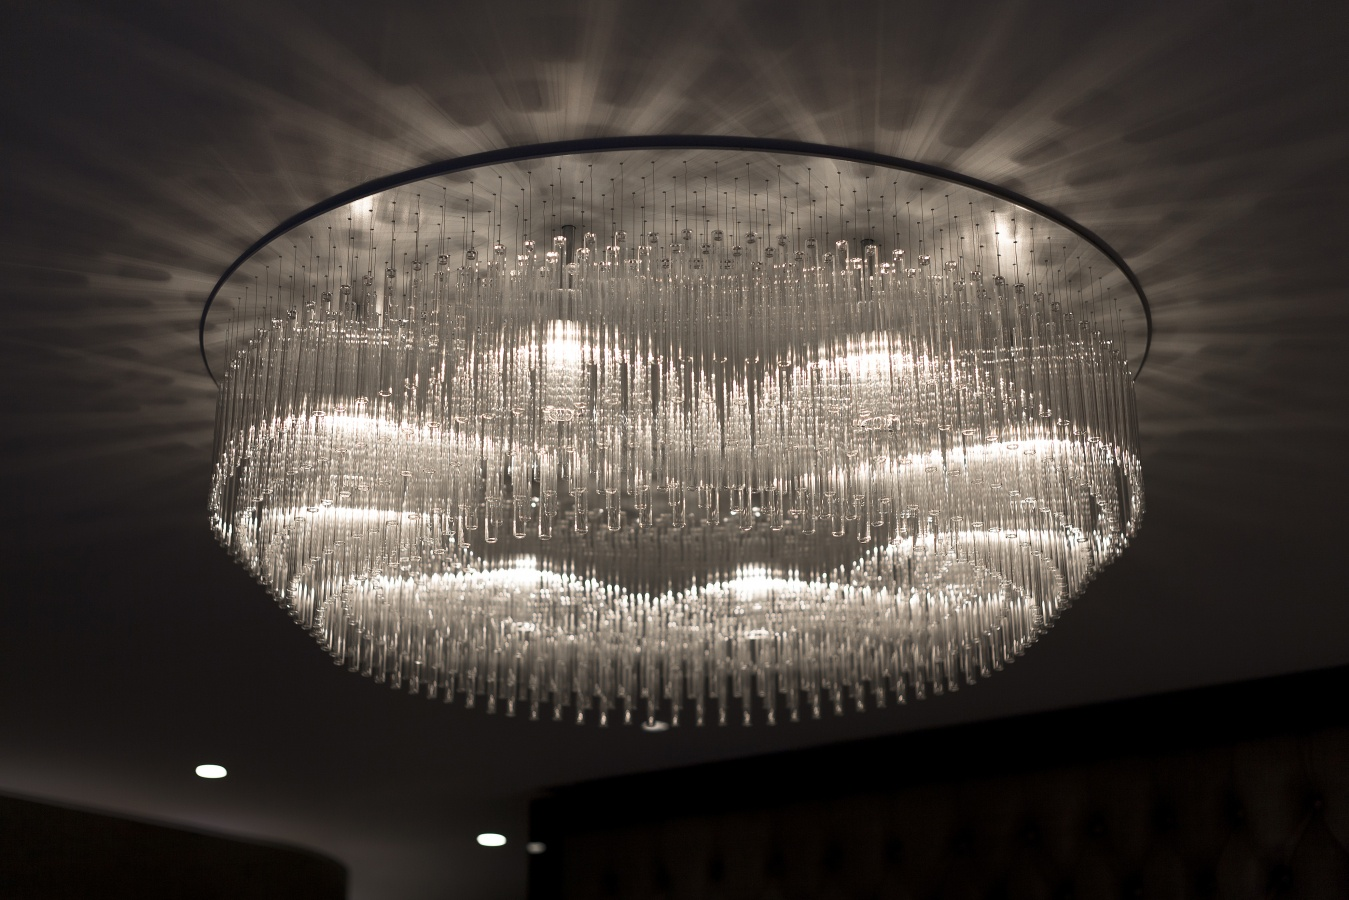 George Singer Modern Chandeliers And Lighting Installations One Thousand Chandelier Photo 1 Www Georgesinger Co Uk